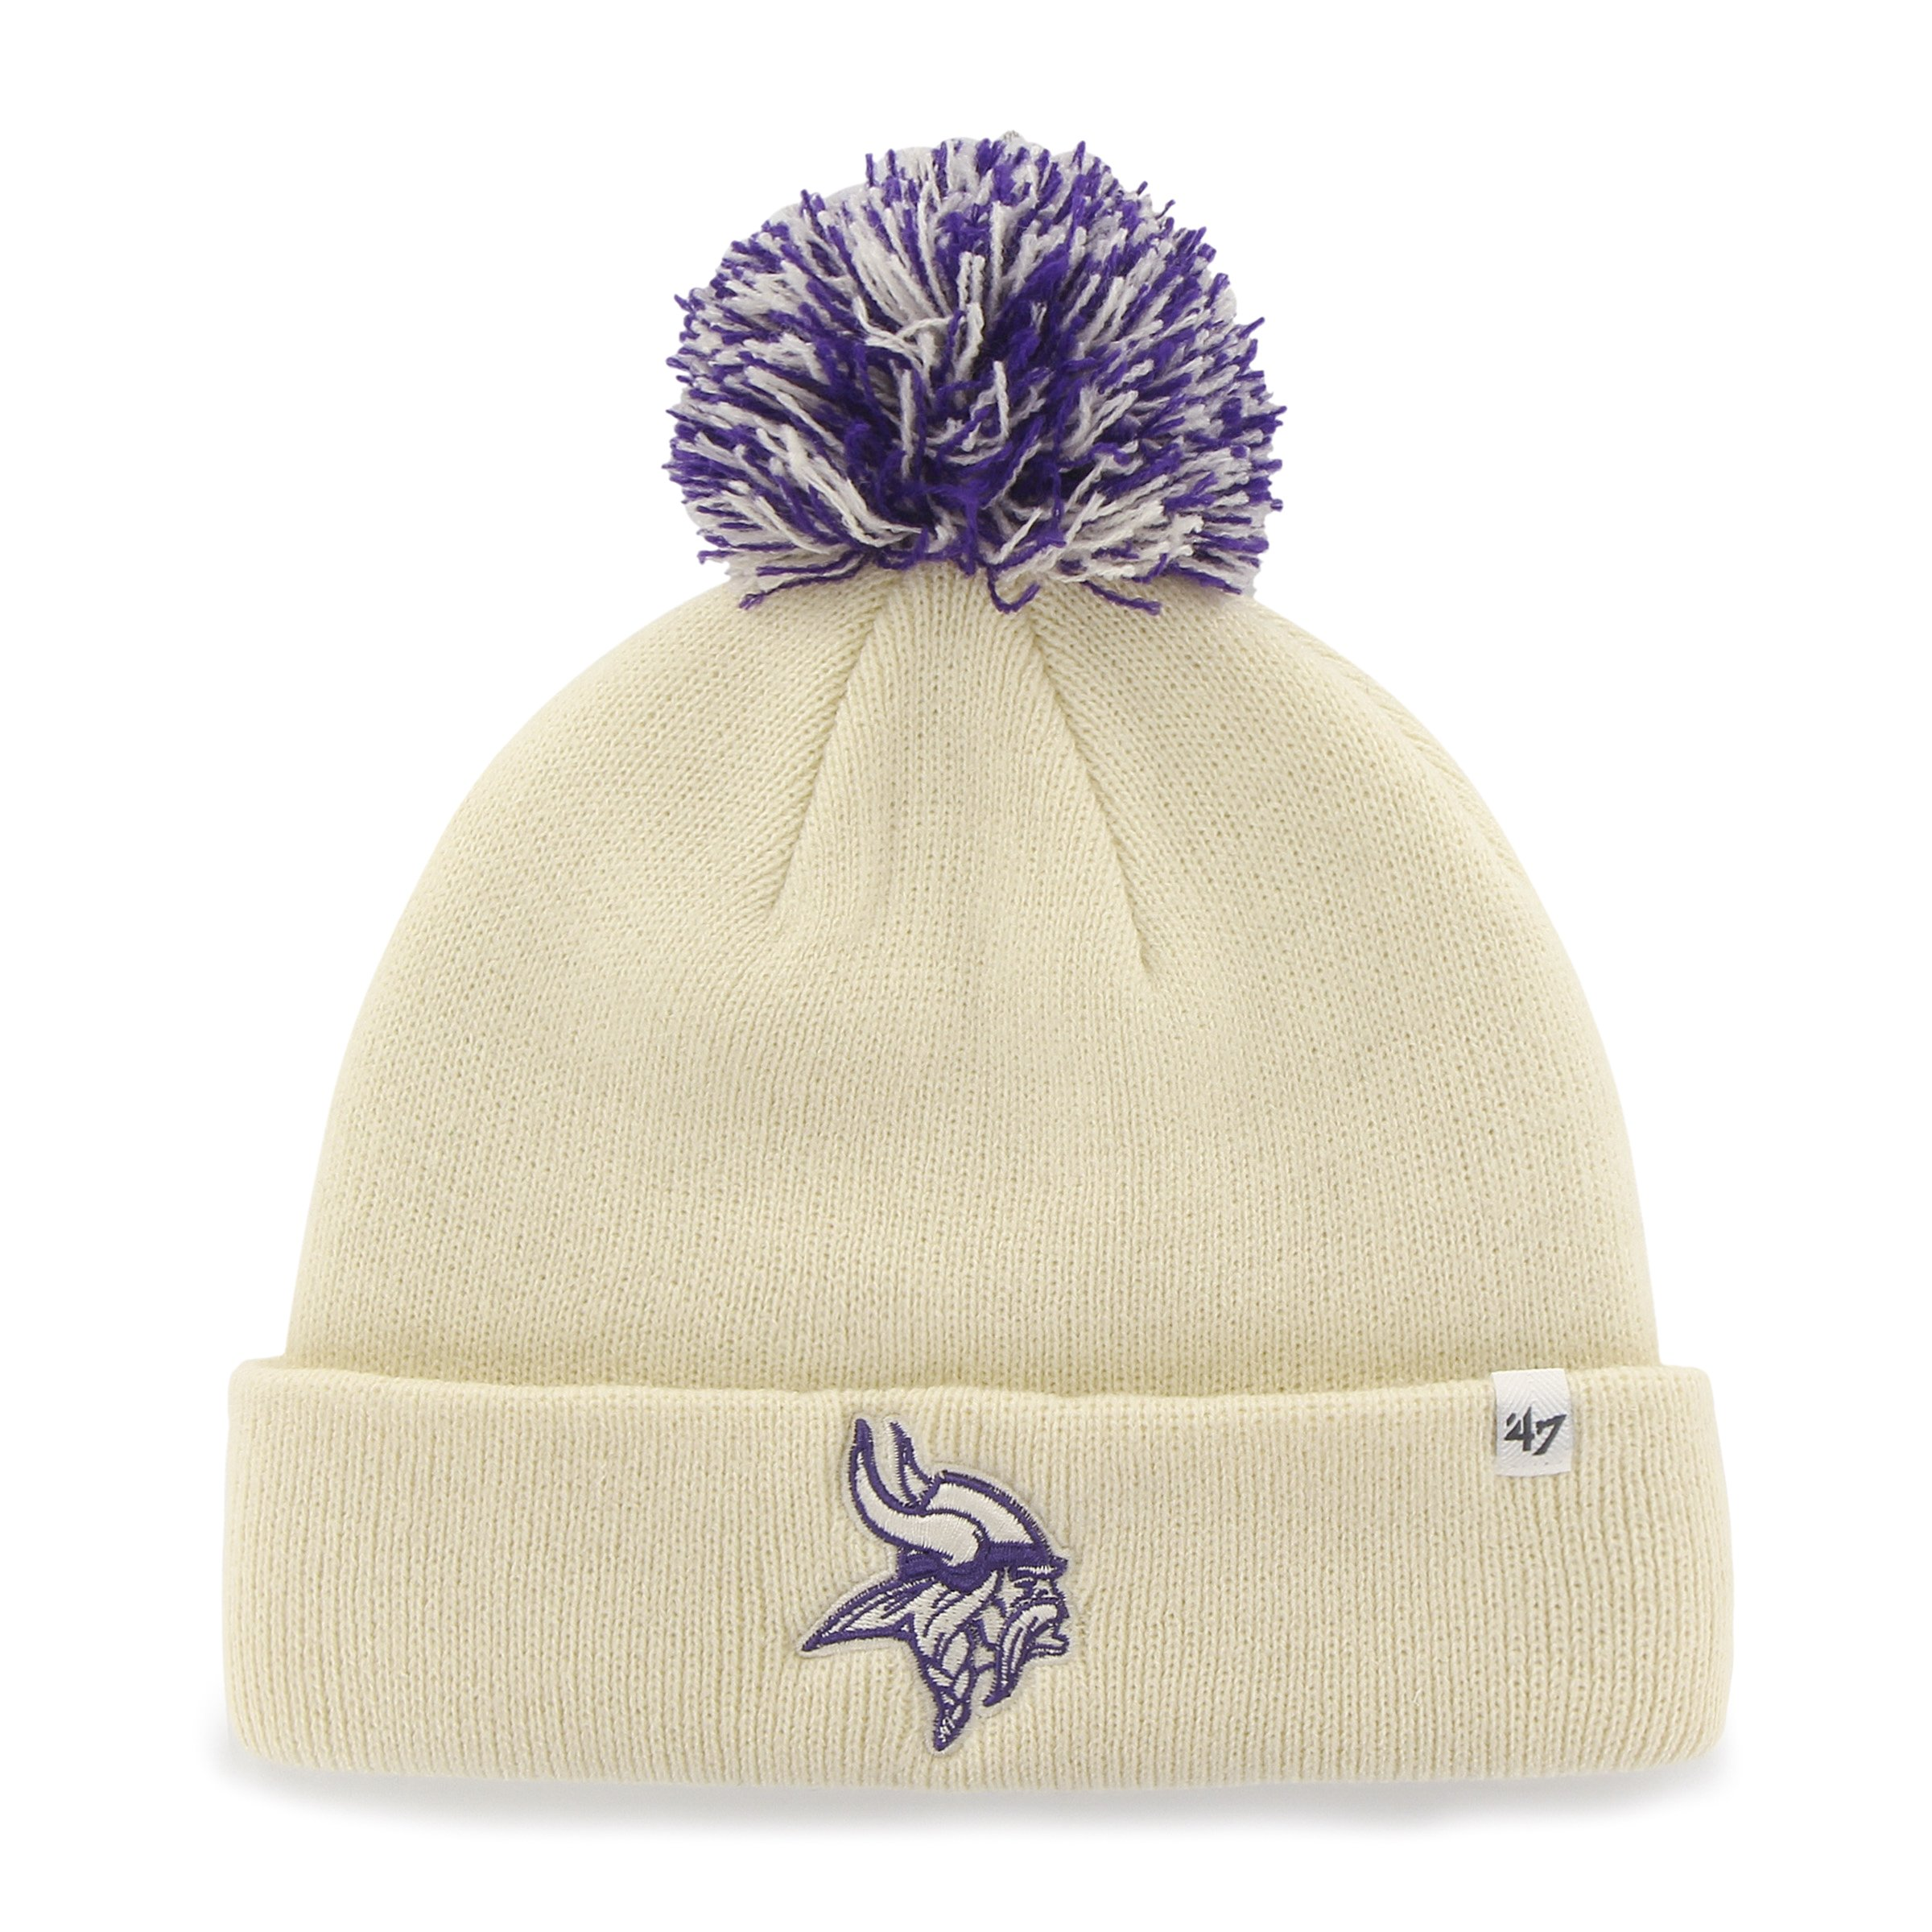 13f1f146 Cheap Vikings Hat, find Vikings Hat deals on line at Alibaba.com